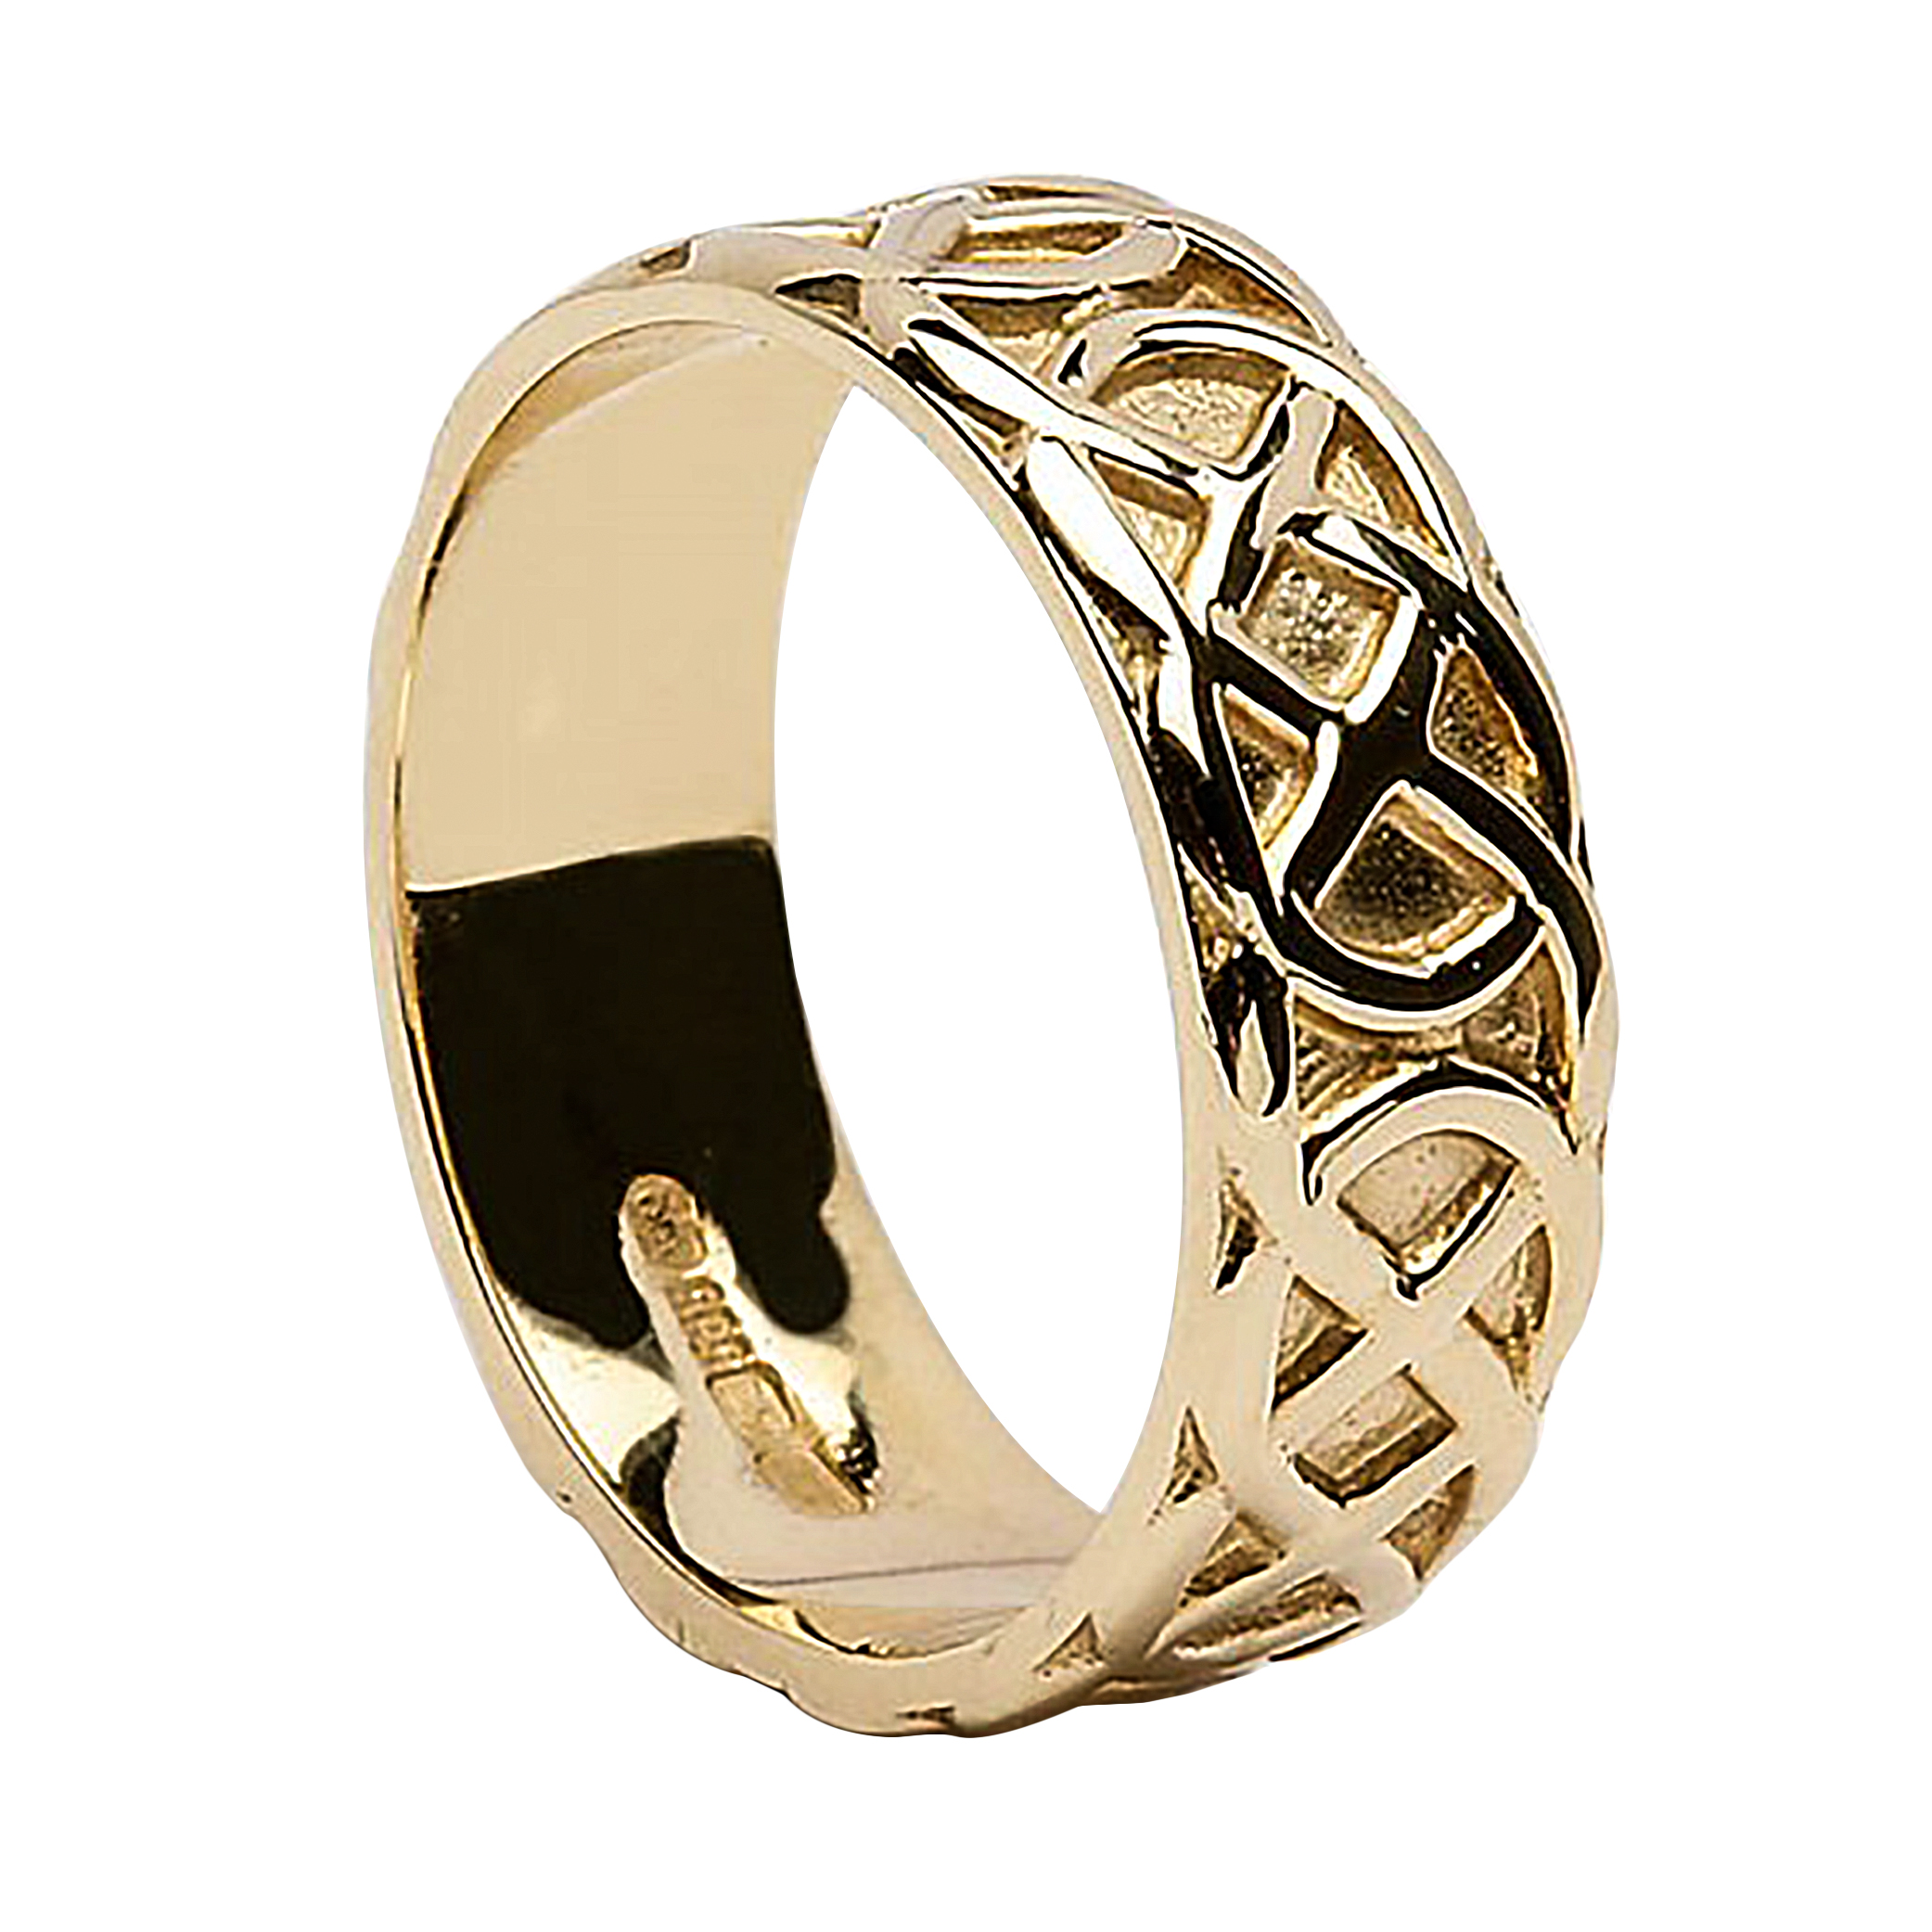 art platinum trilogy rings vintage ring gold products trinity deco diamond